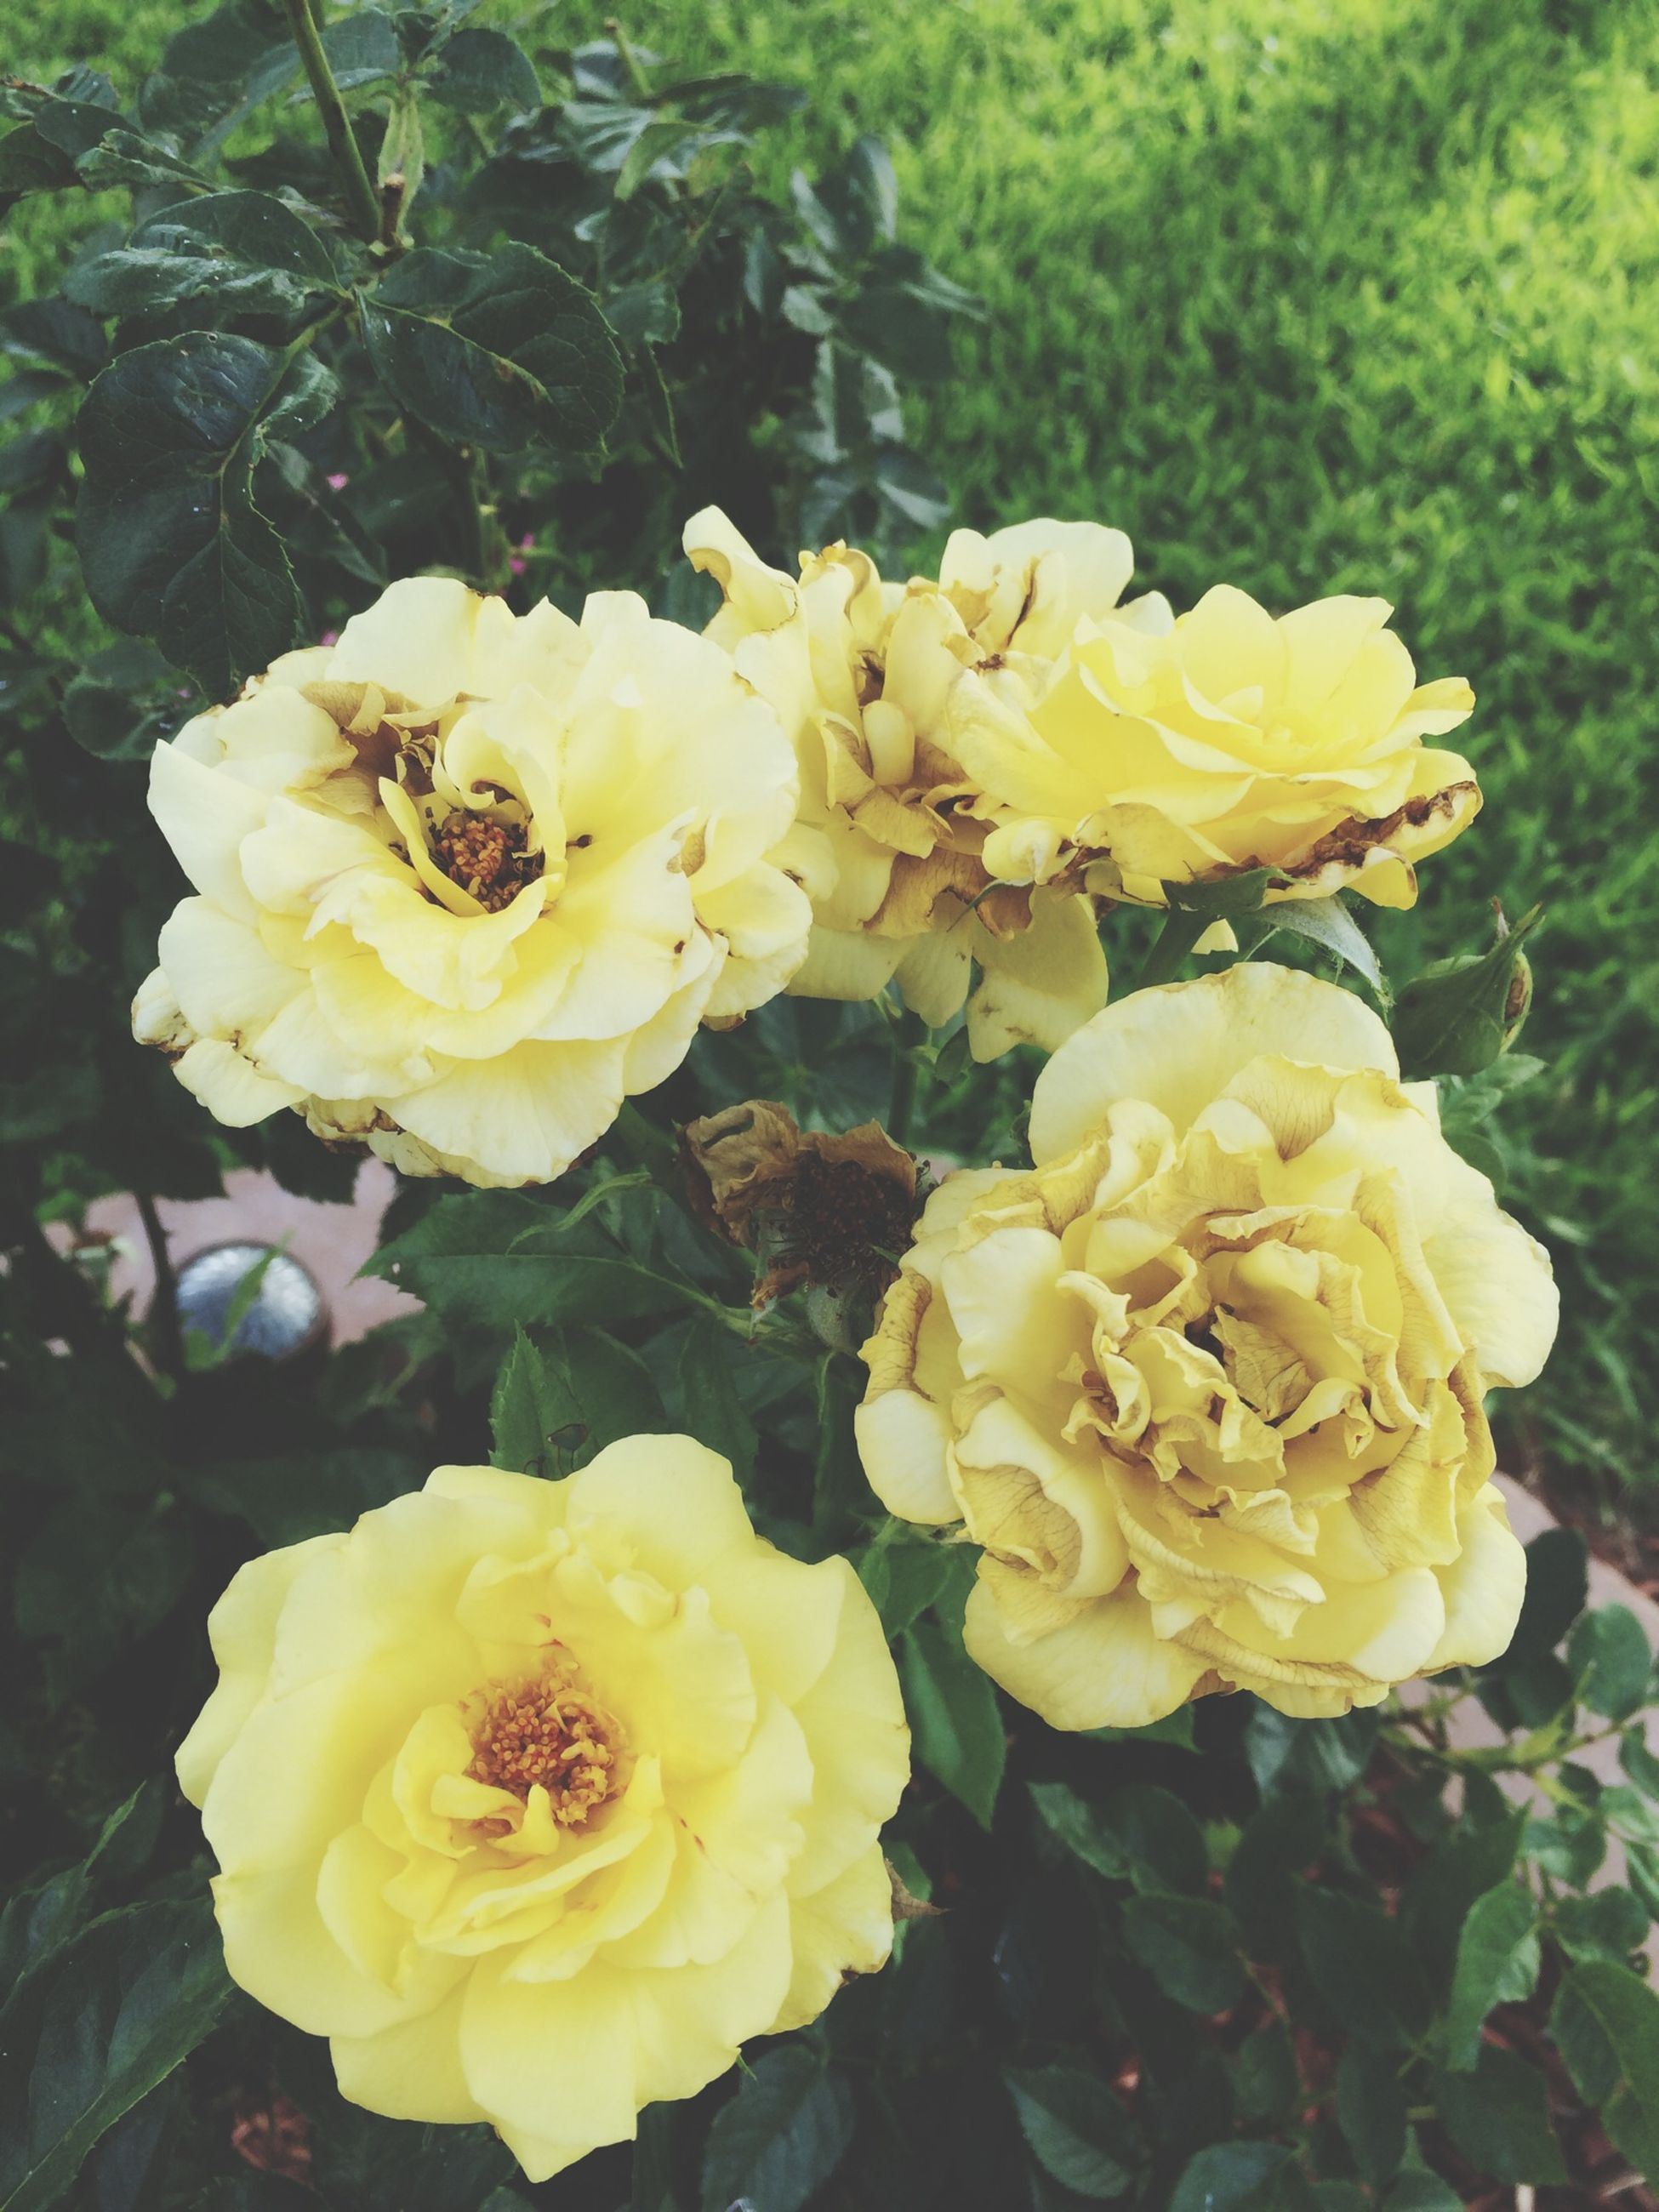 flower, petal, freshness, flower head, fragility, yellow, growth, beauty in nature, blooming, plant, nature, rose - flower, close-up, high angle view, focus on foreground, in bloom, no people, day, park - man made space, outdoors